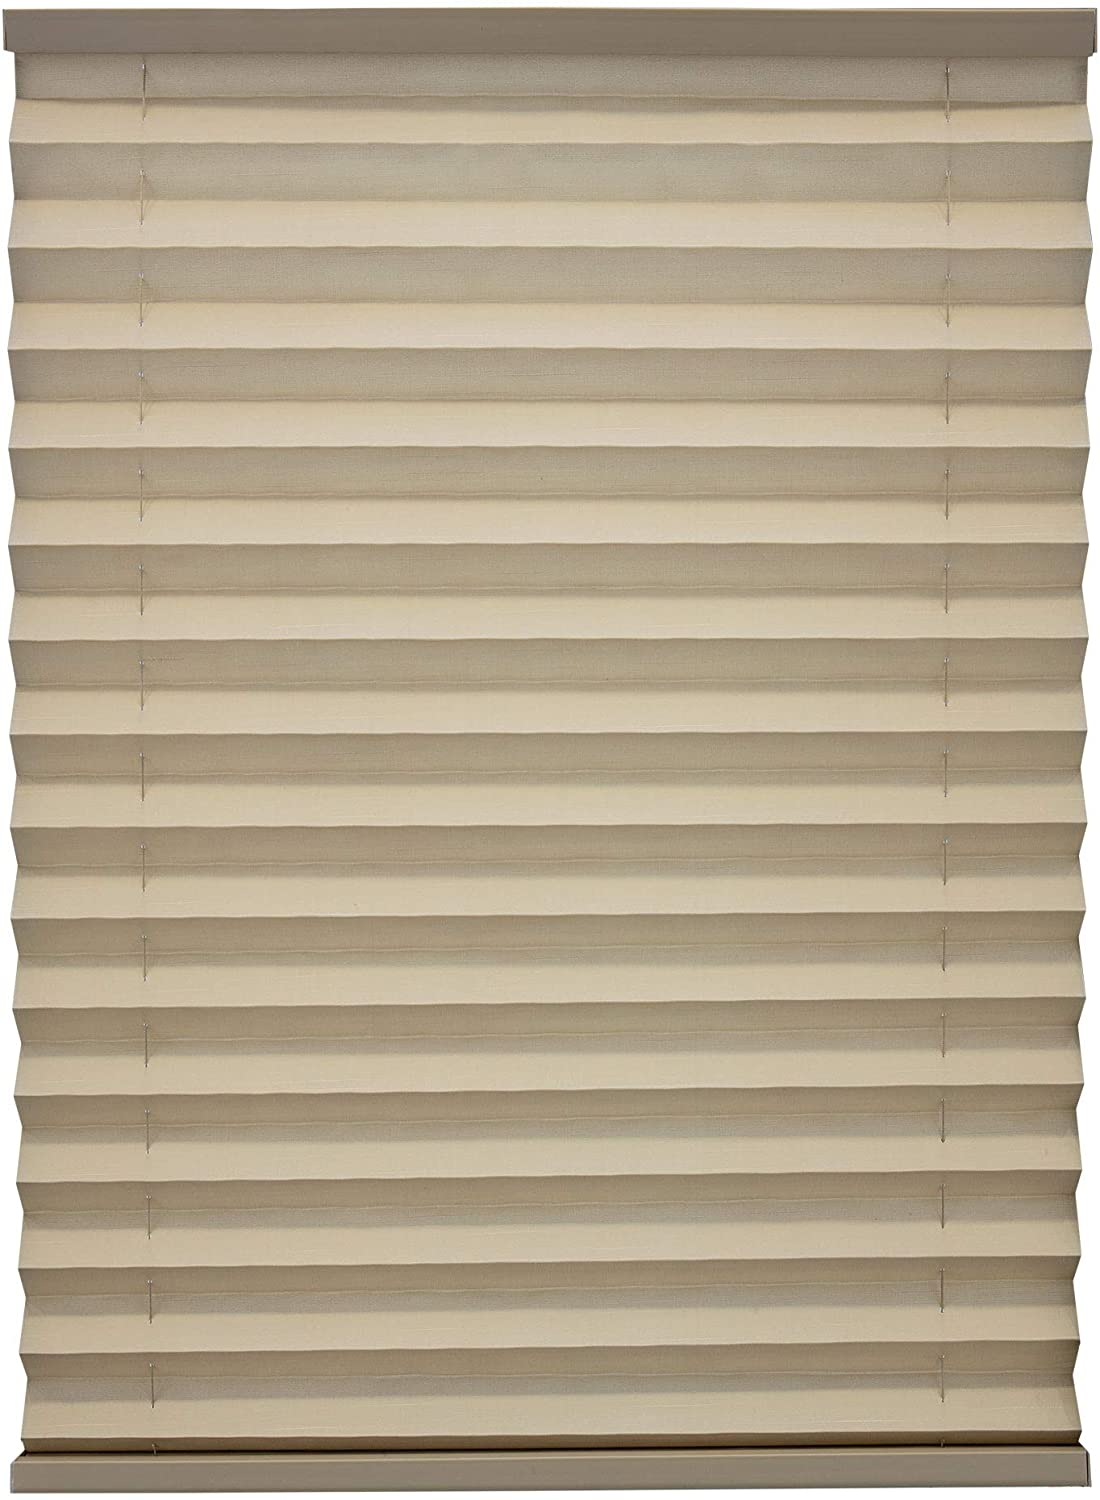 Irvine Shade and Door RV Camper Pleated Blind Shades